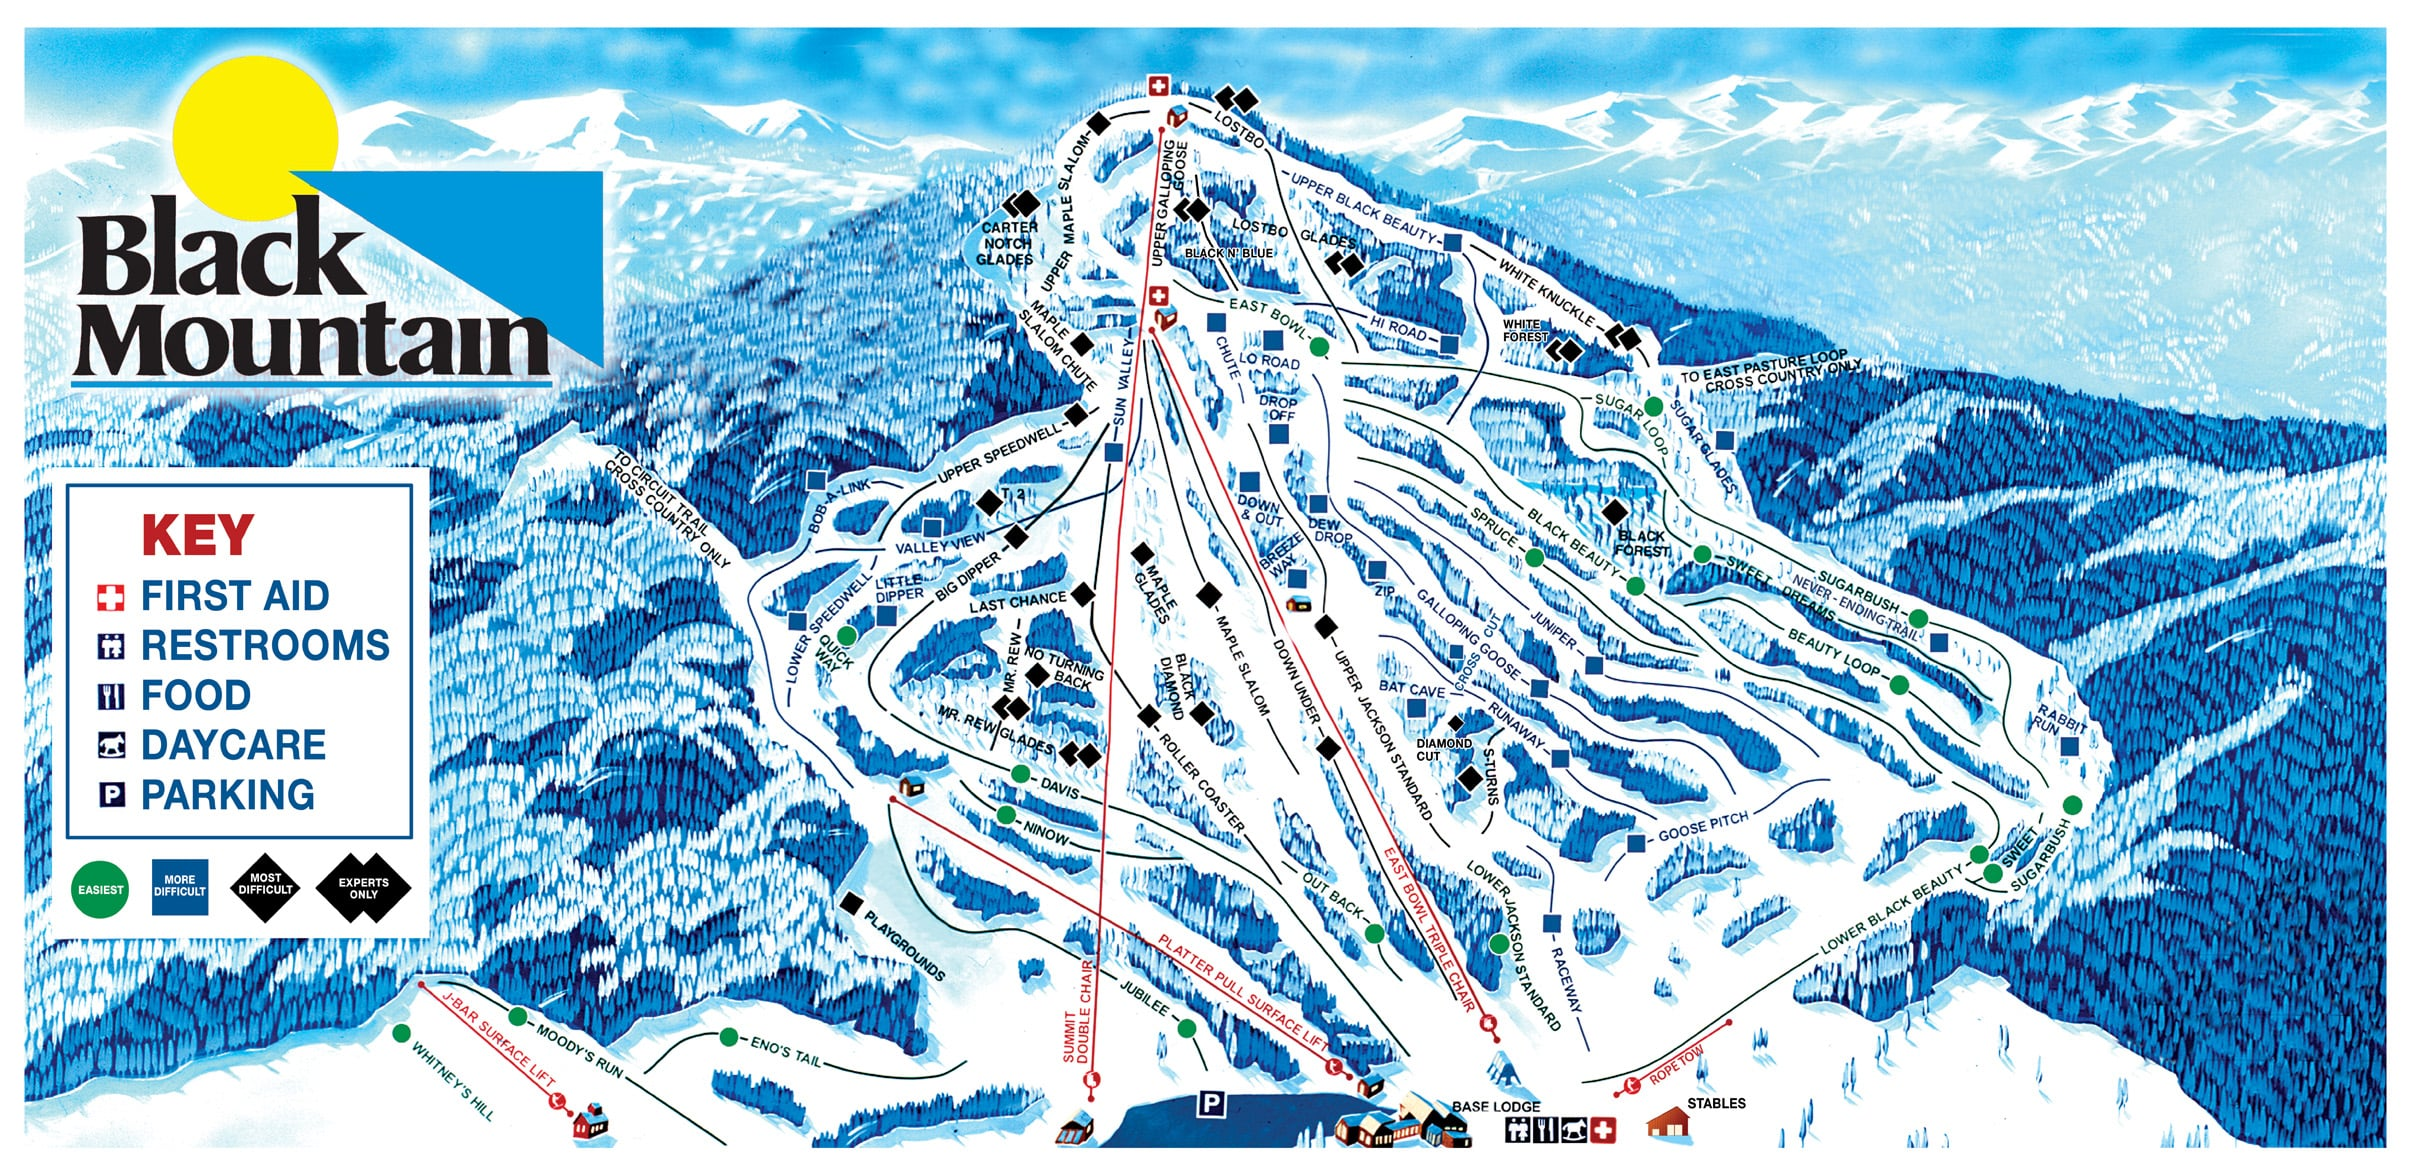 black mountain ski trail map free download